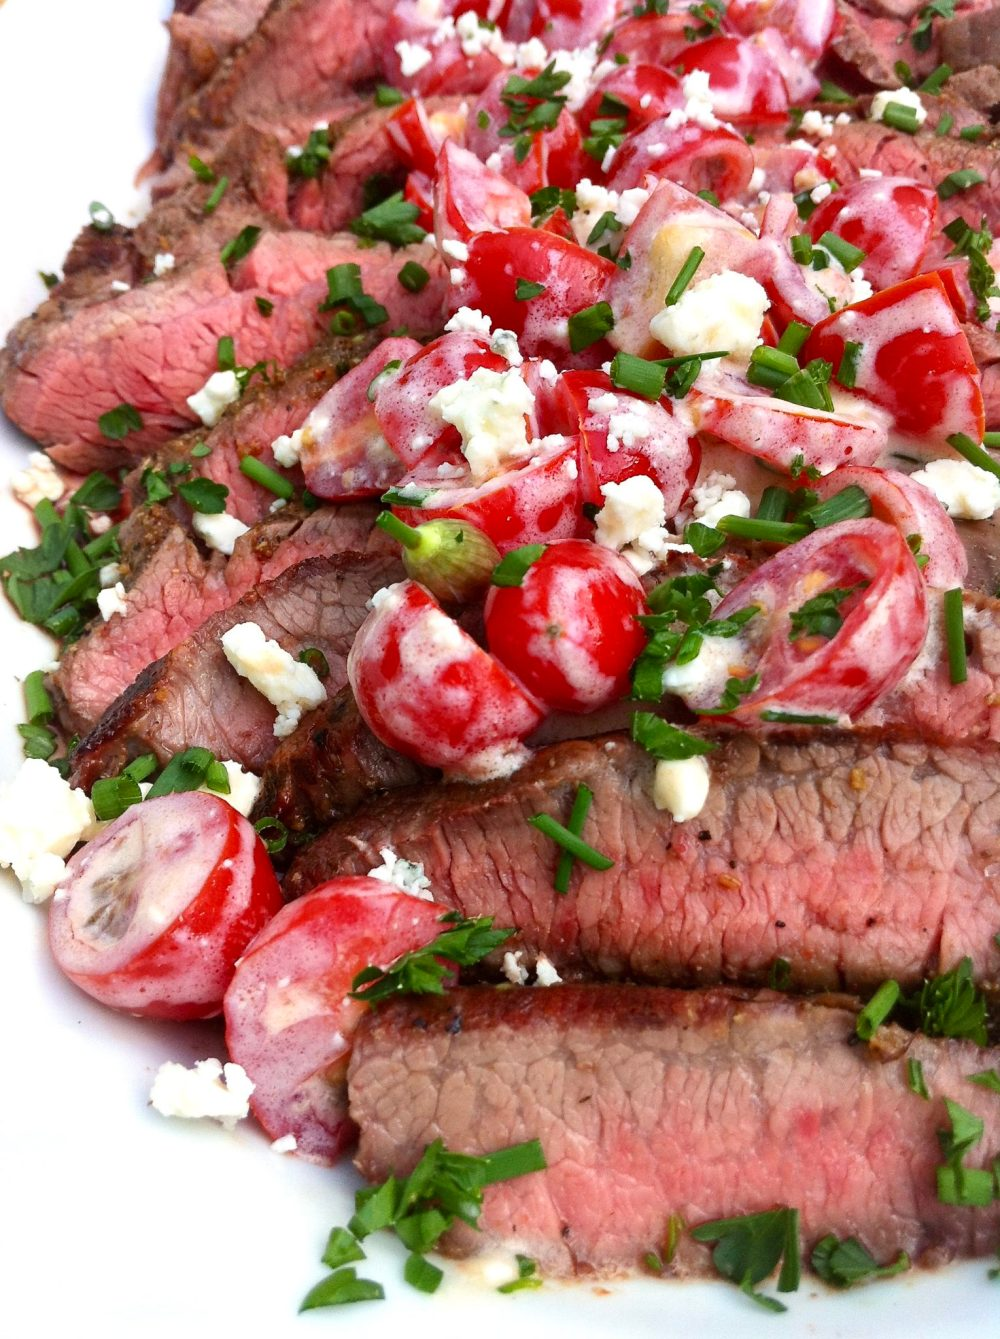 A healthy topping adds complementary flavor and fresh appeal to grilled flank steak. It's easy to make and leftovers offer an ideal protein topper to a big dinner salad another night.